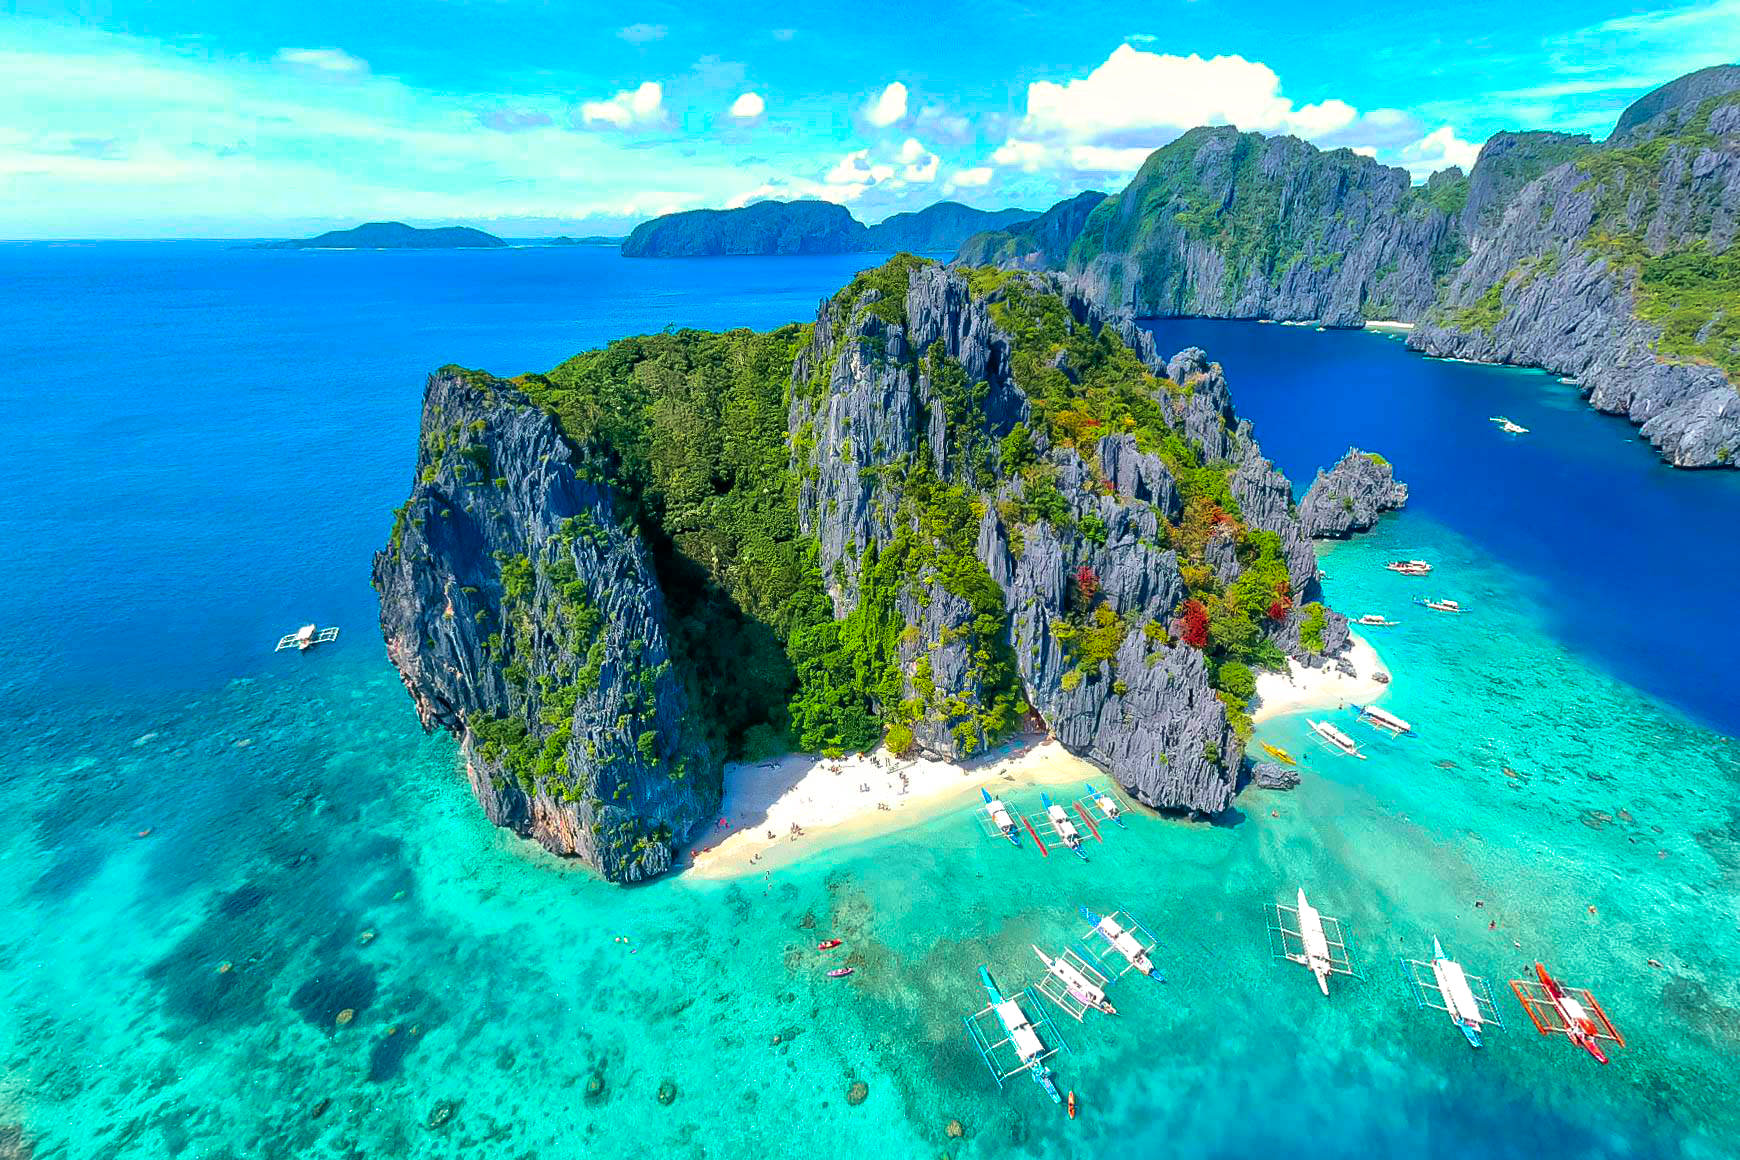 PHOTOS: Spectacular El Nido Palawan Philippines Aerial View